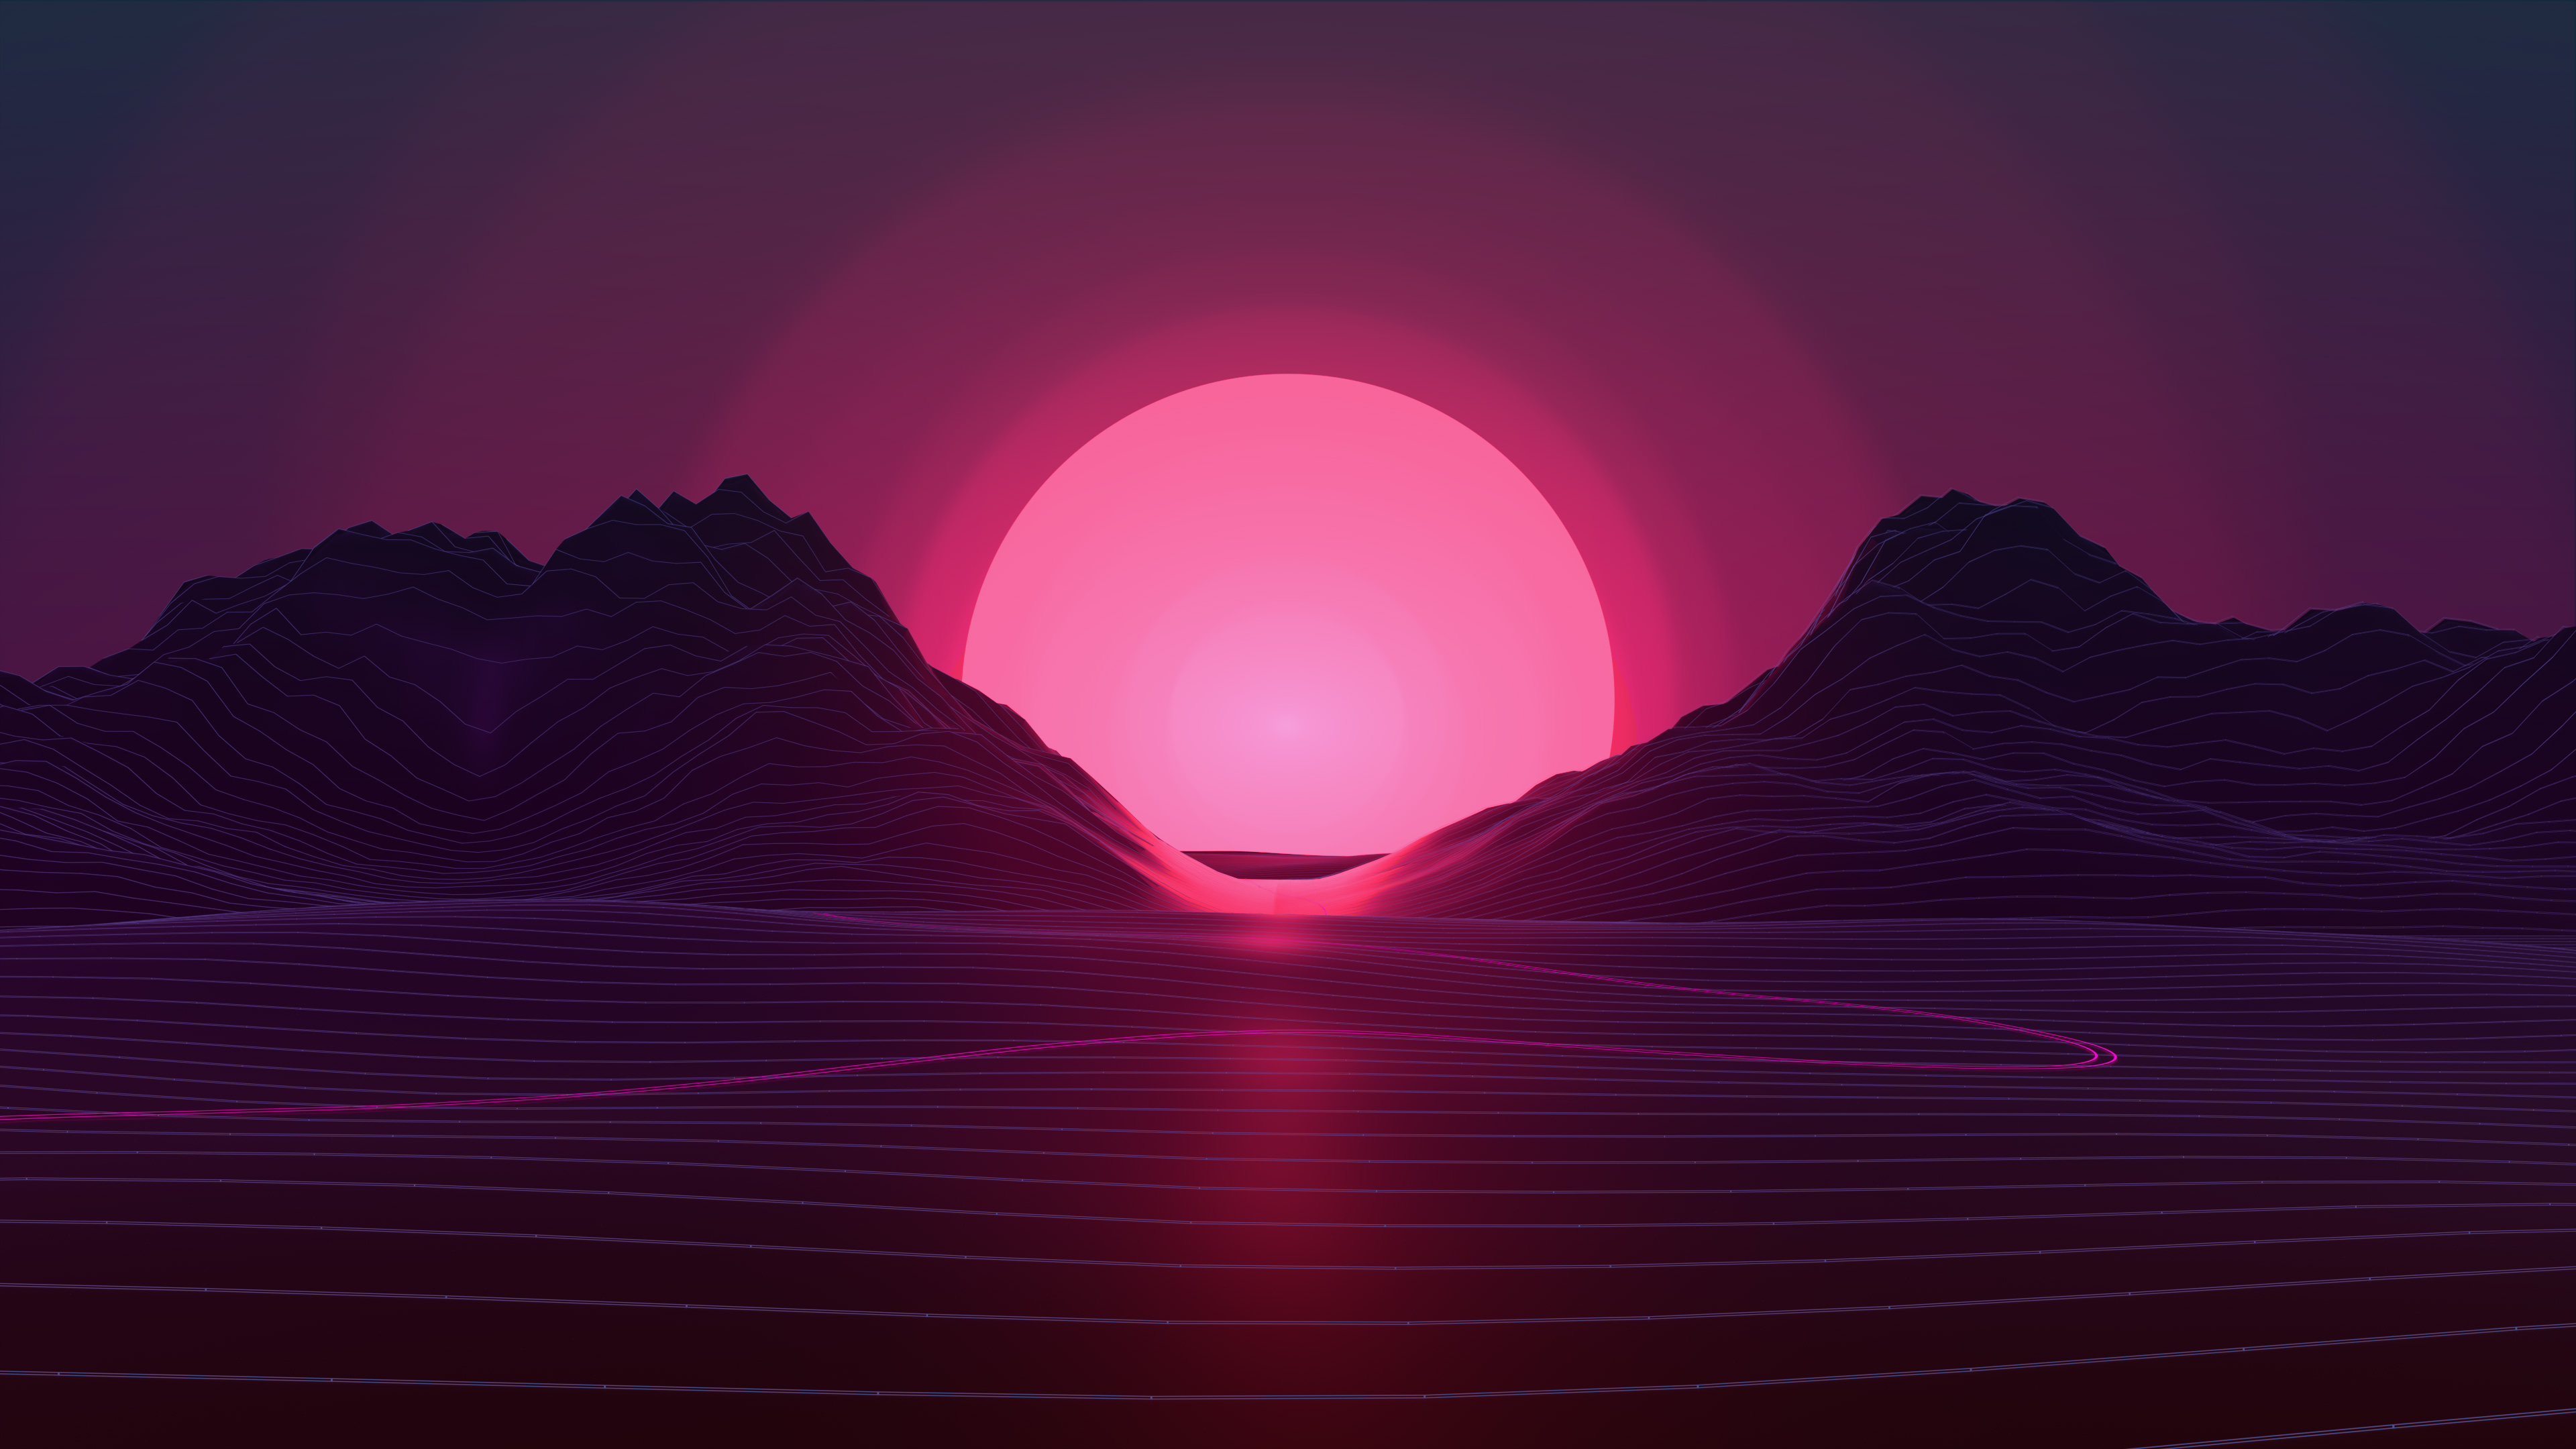 Neon Sunset 4k HD Artist Wallpapers Images Backgrounds